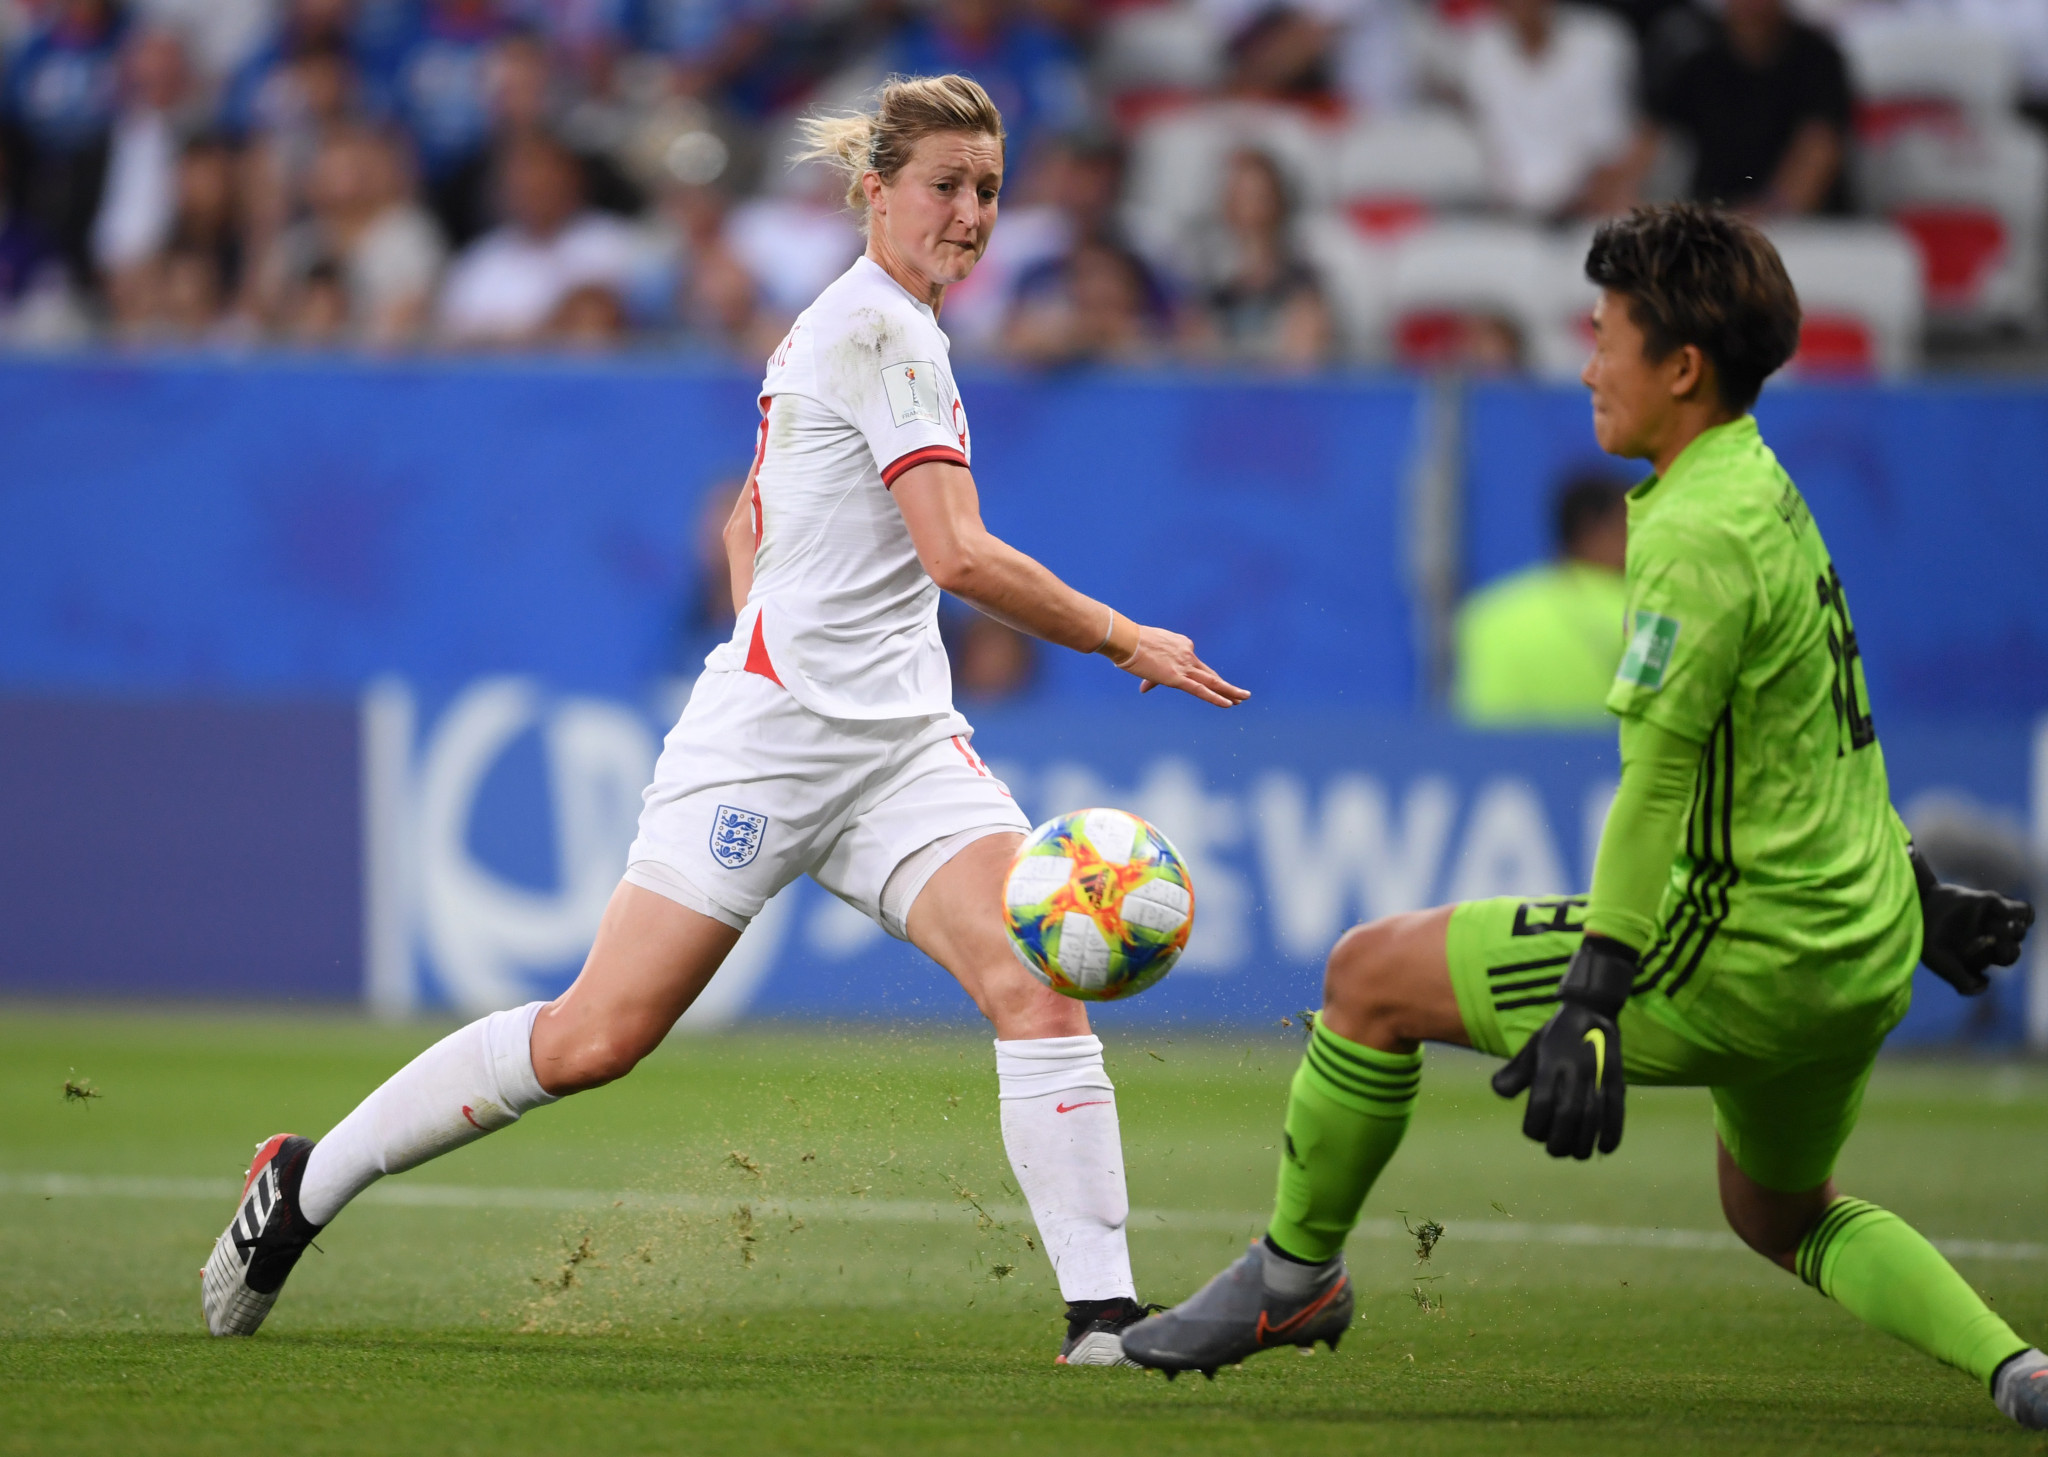 Ellen White opened the scoring for England at Allianz Arena in Nice in the 14th minute ©Getty Images